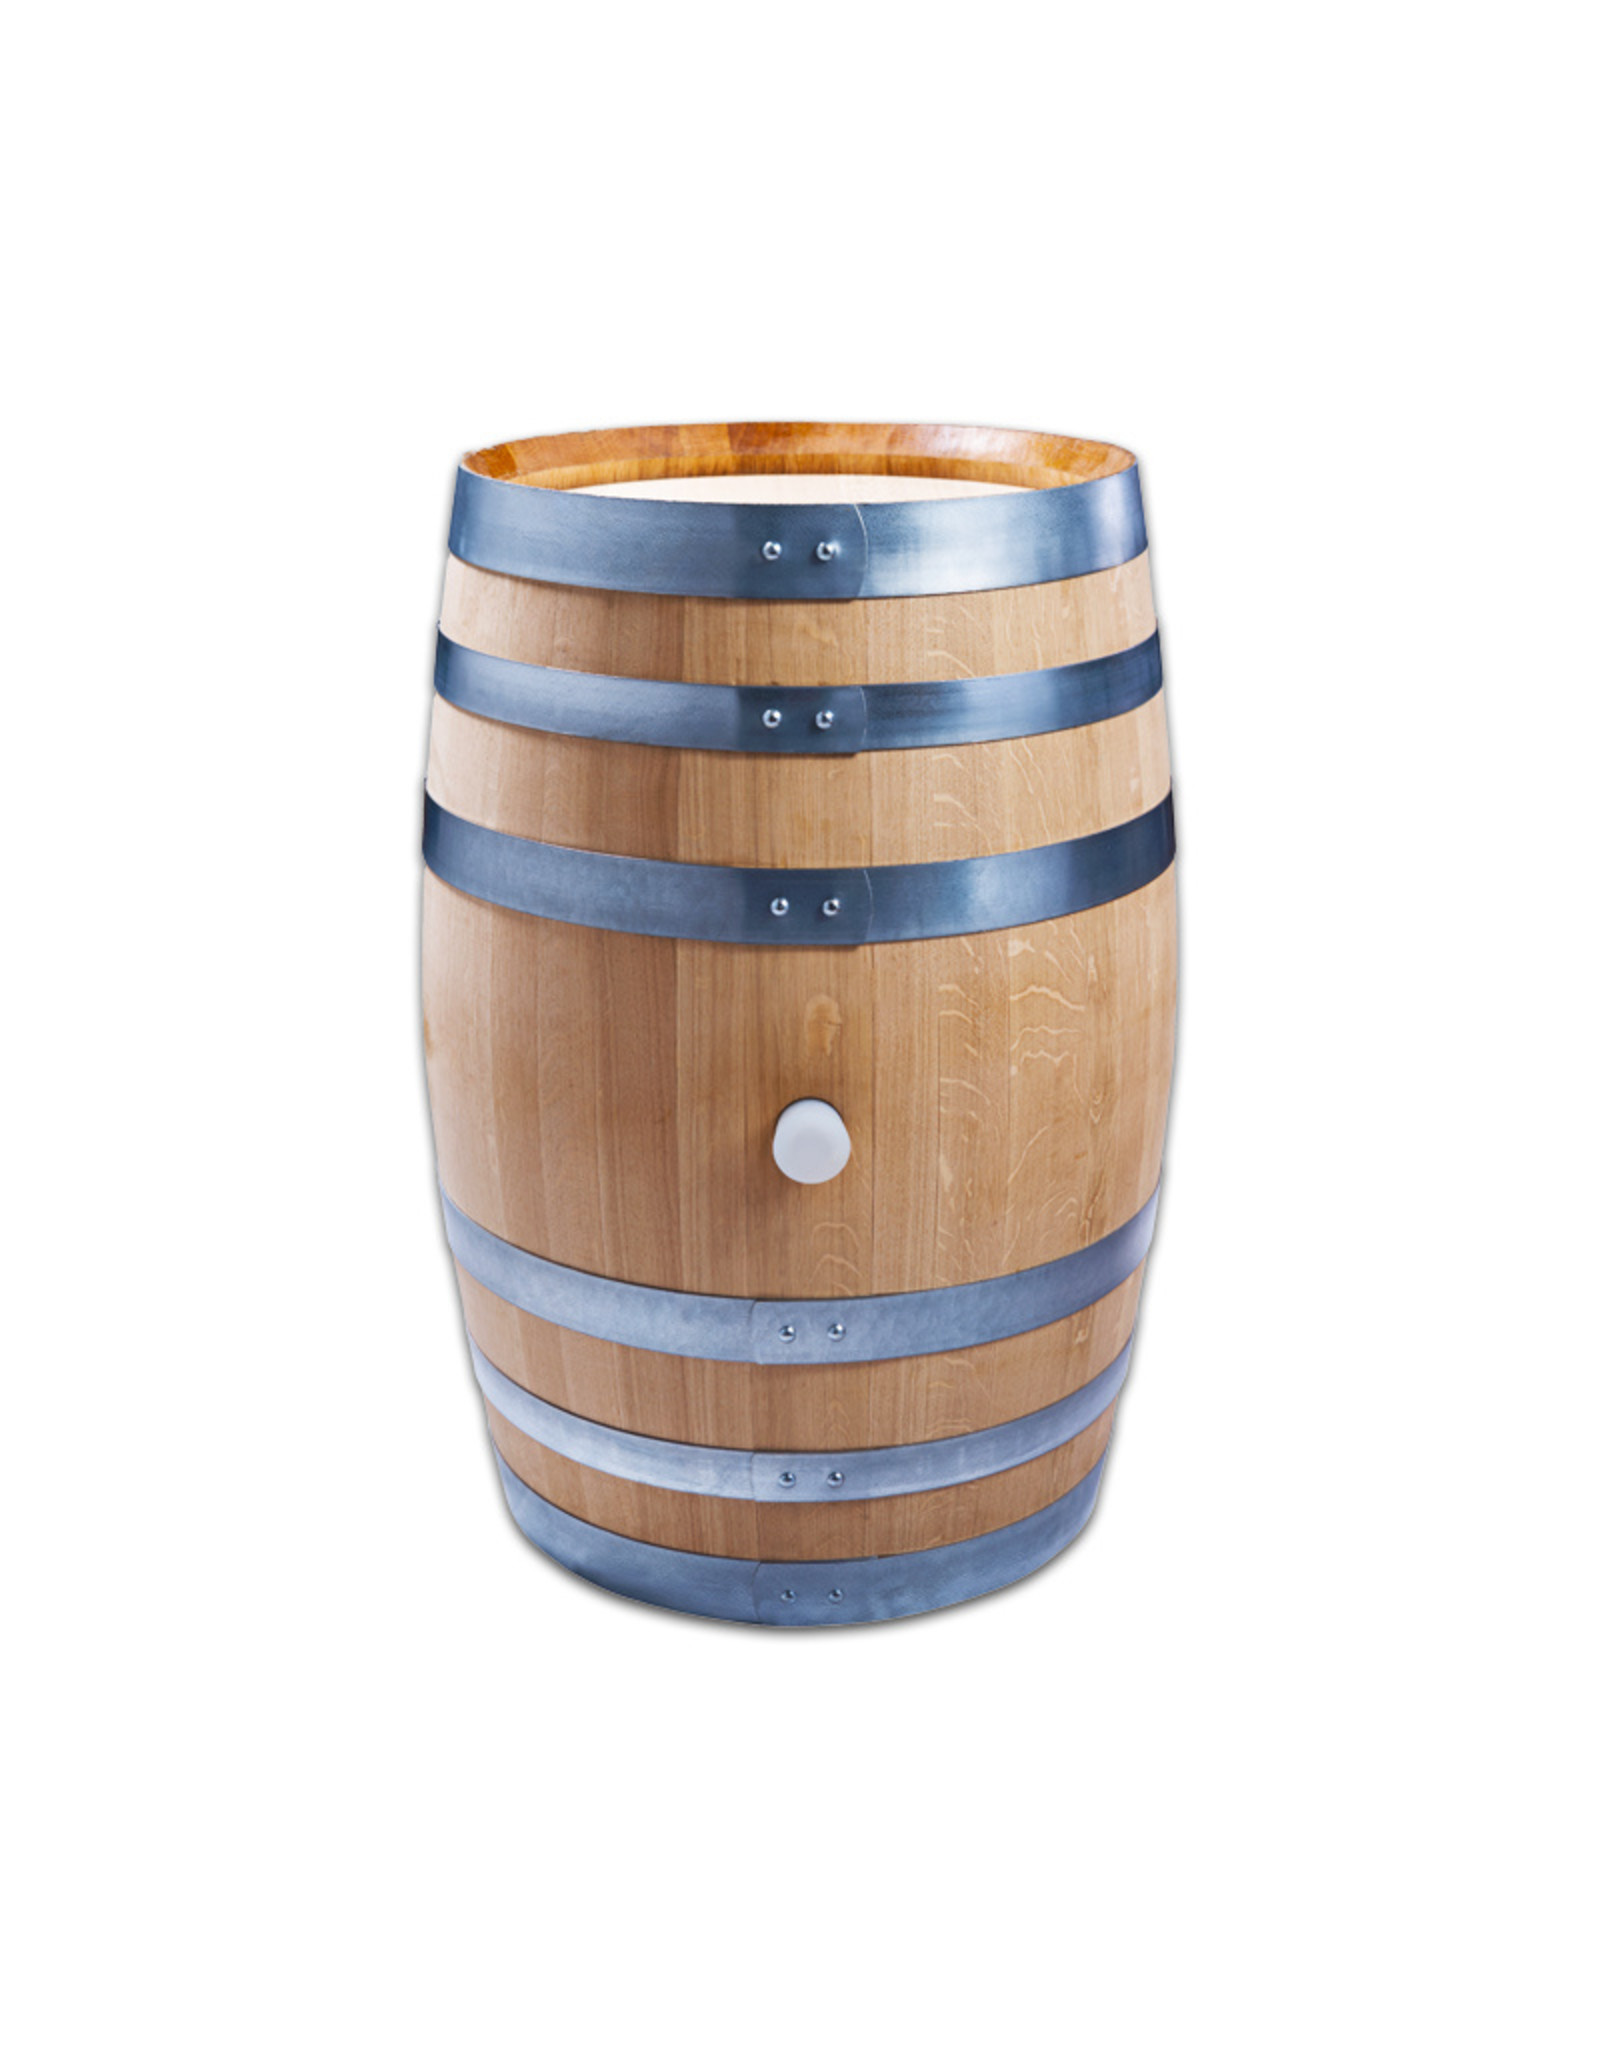 30 L - 115 L SPIRIT BARREL FRENCH OAK